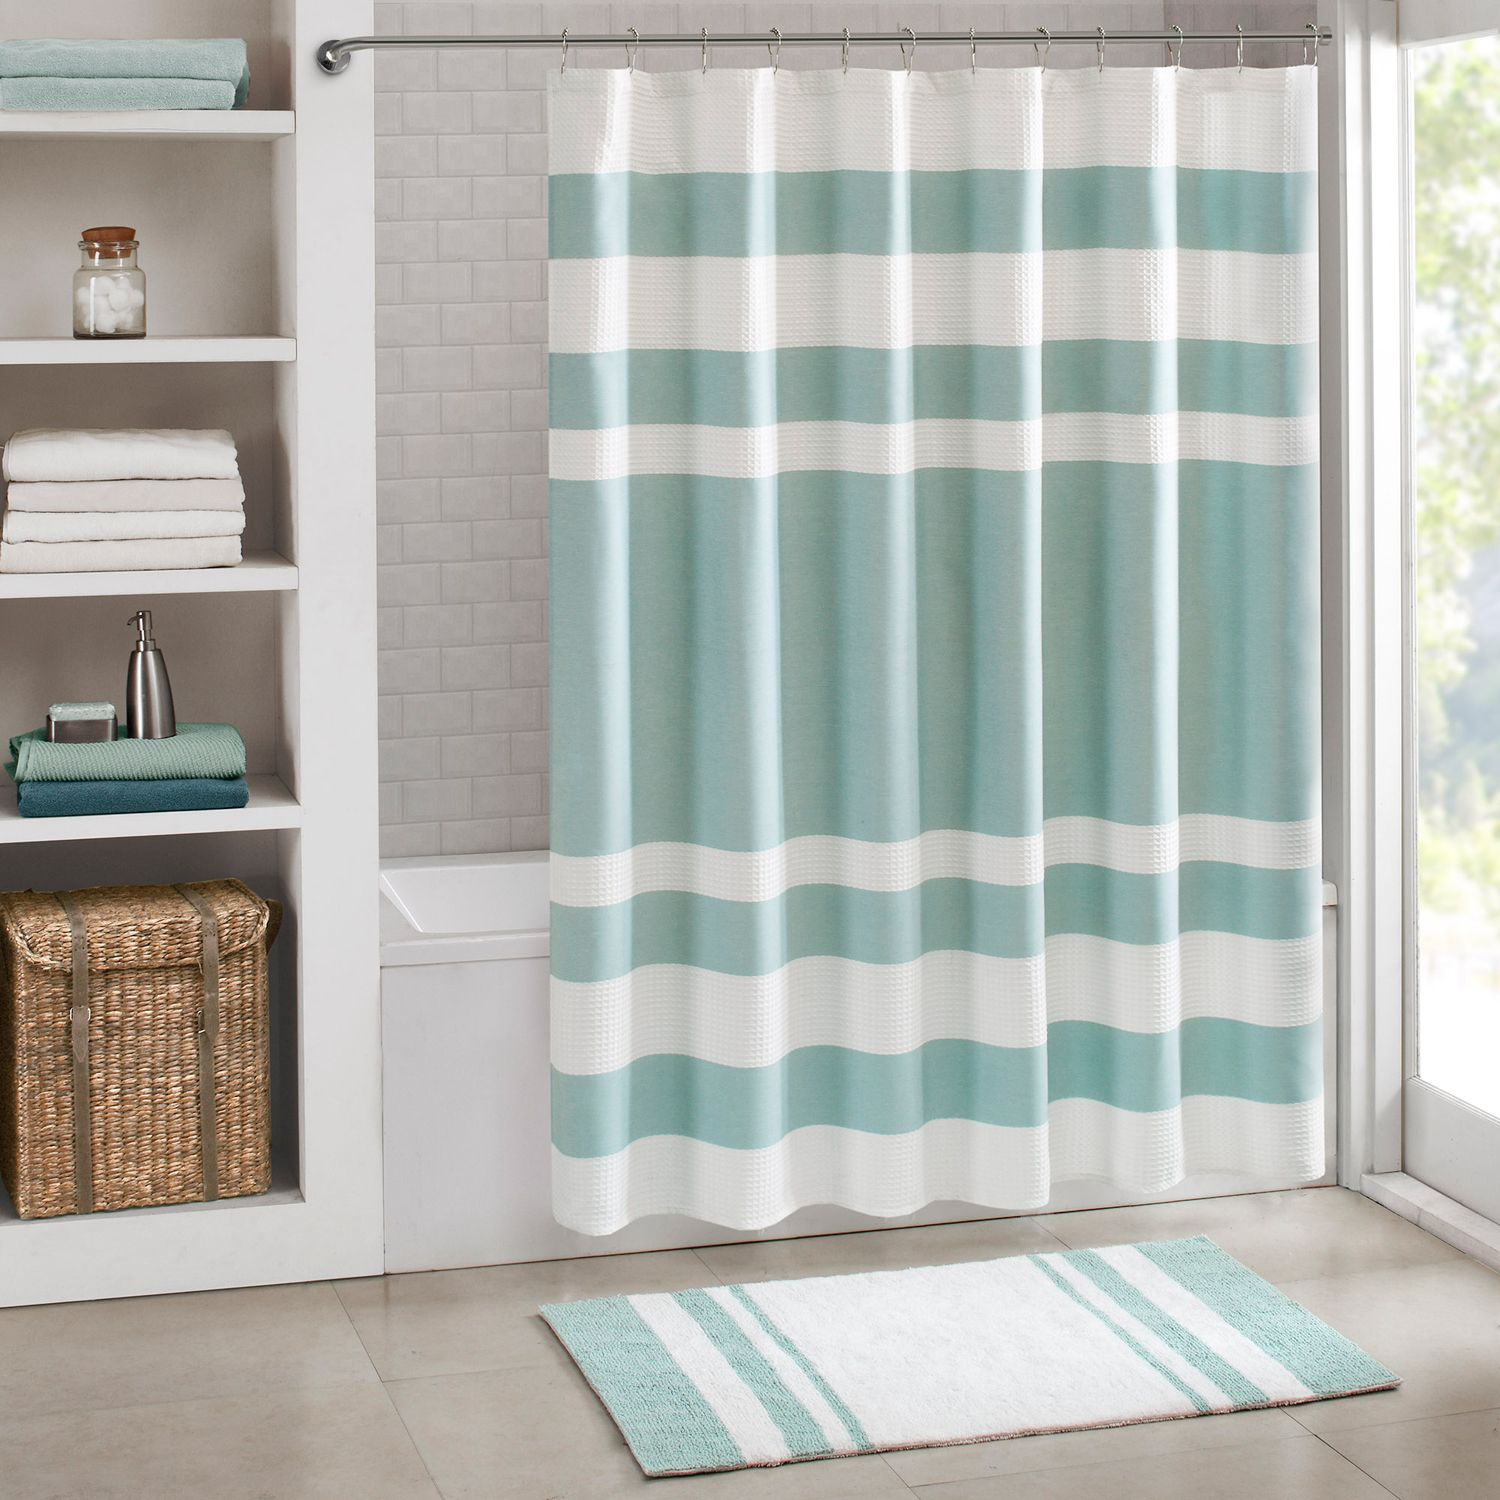 Charming Madison Park Spa Shower Curtain Collection